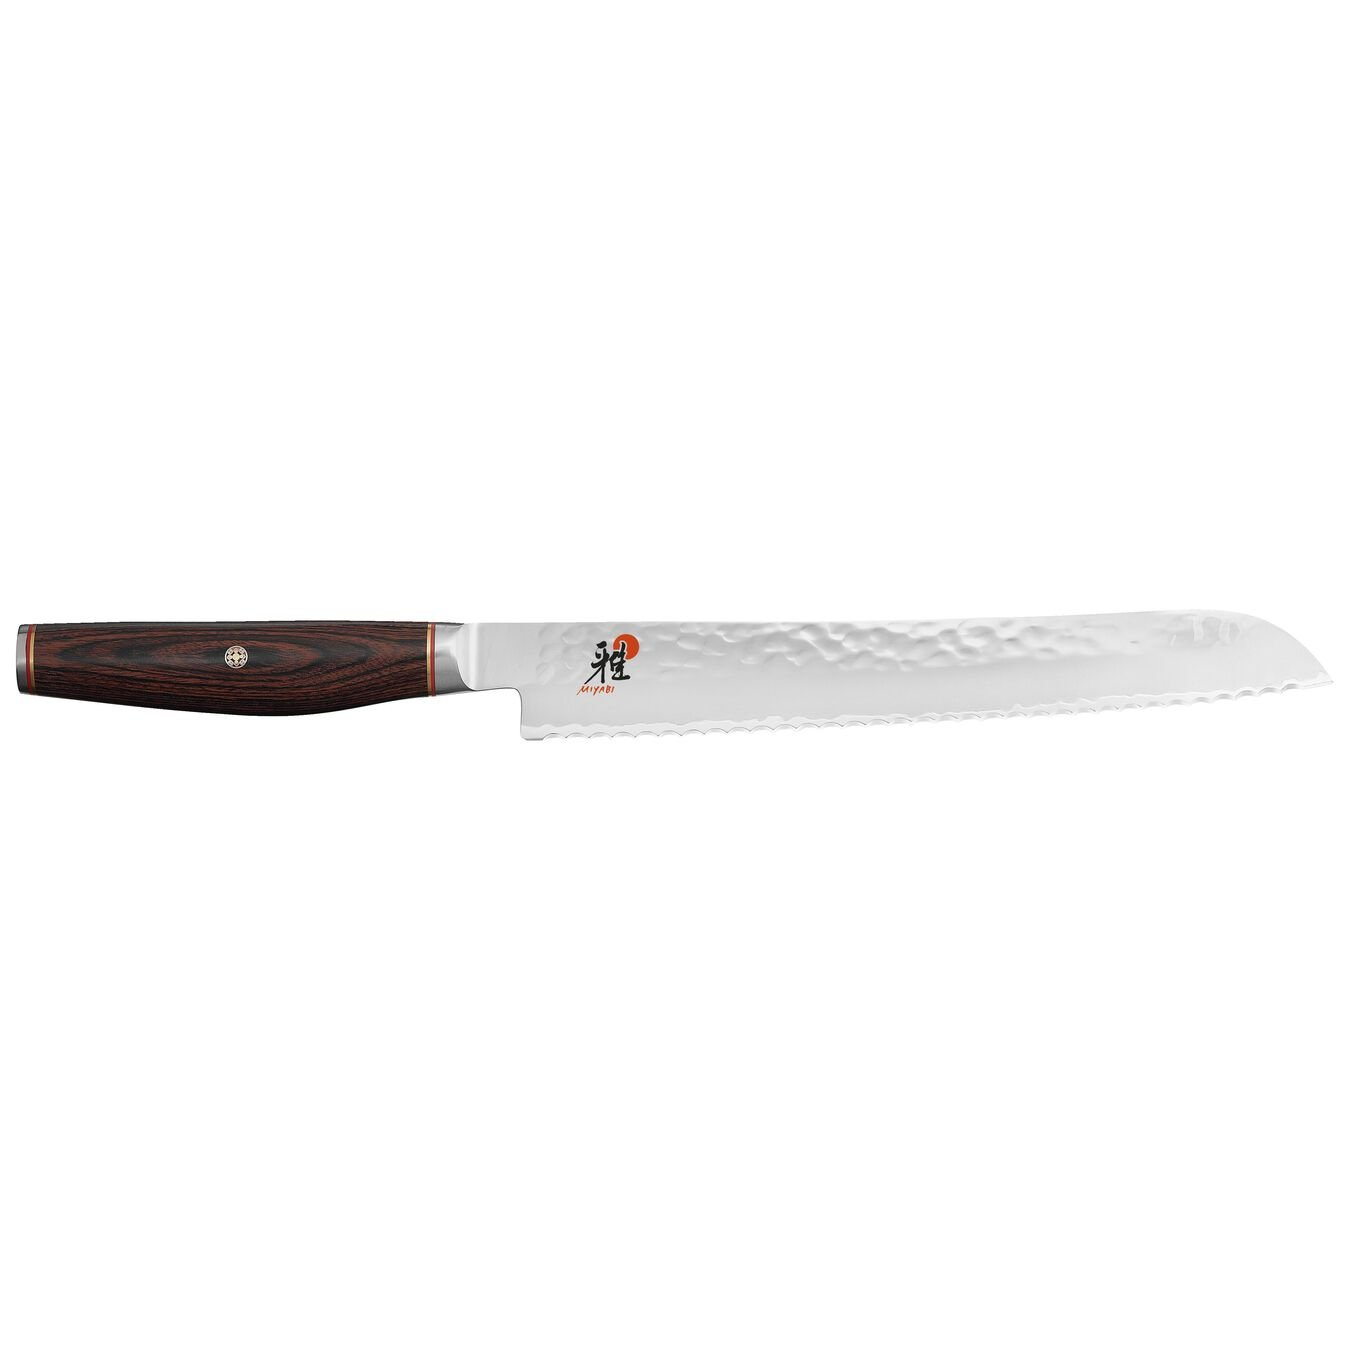 9-inch Bread Knife,,large 1